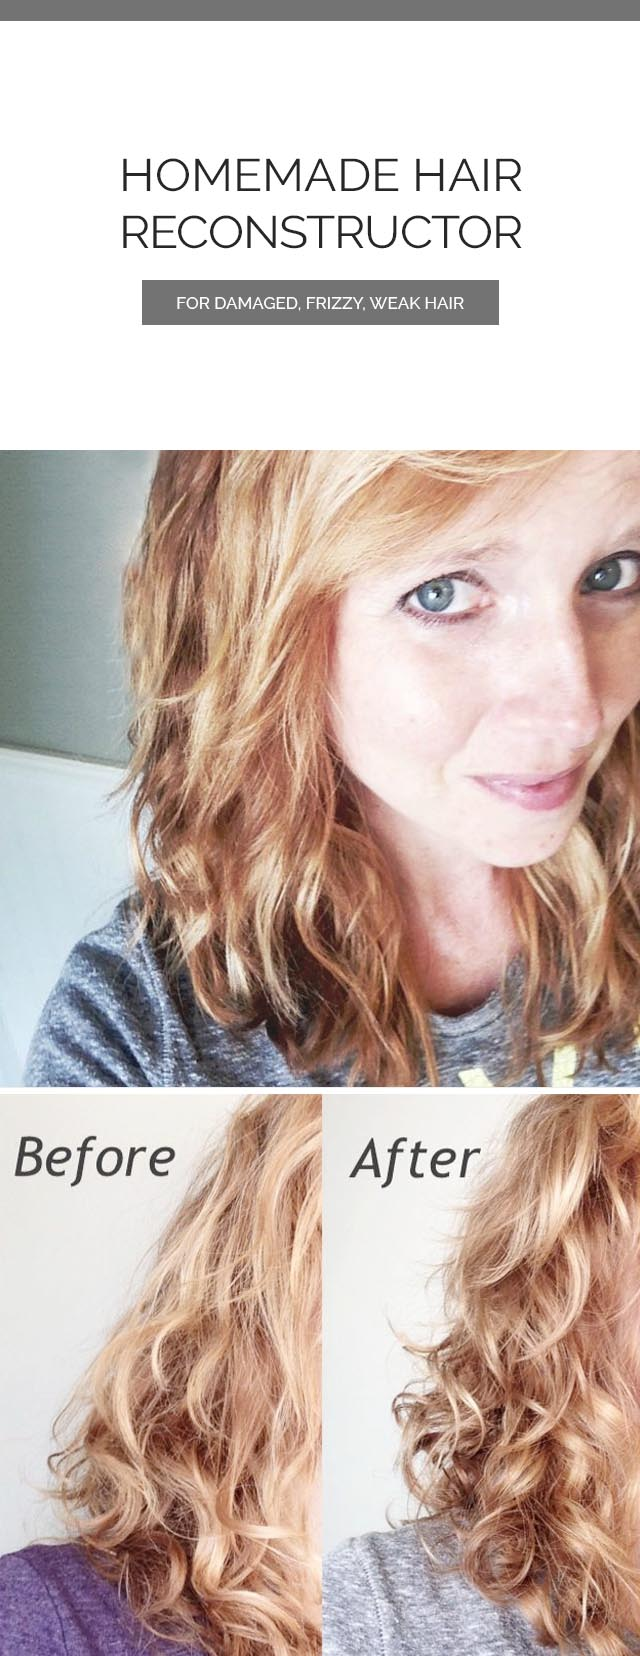 DIY Homemade Hair Reconstructor